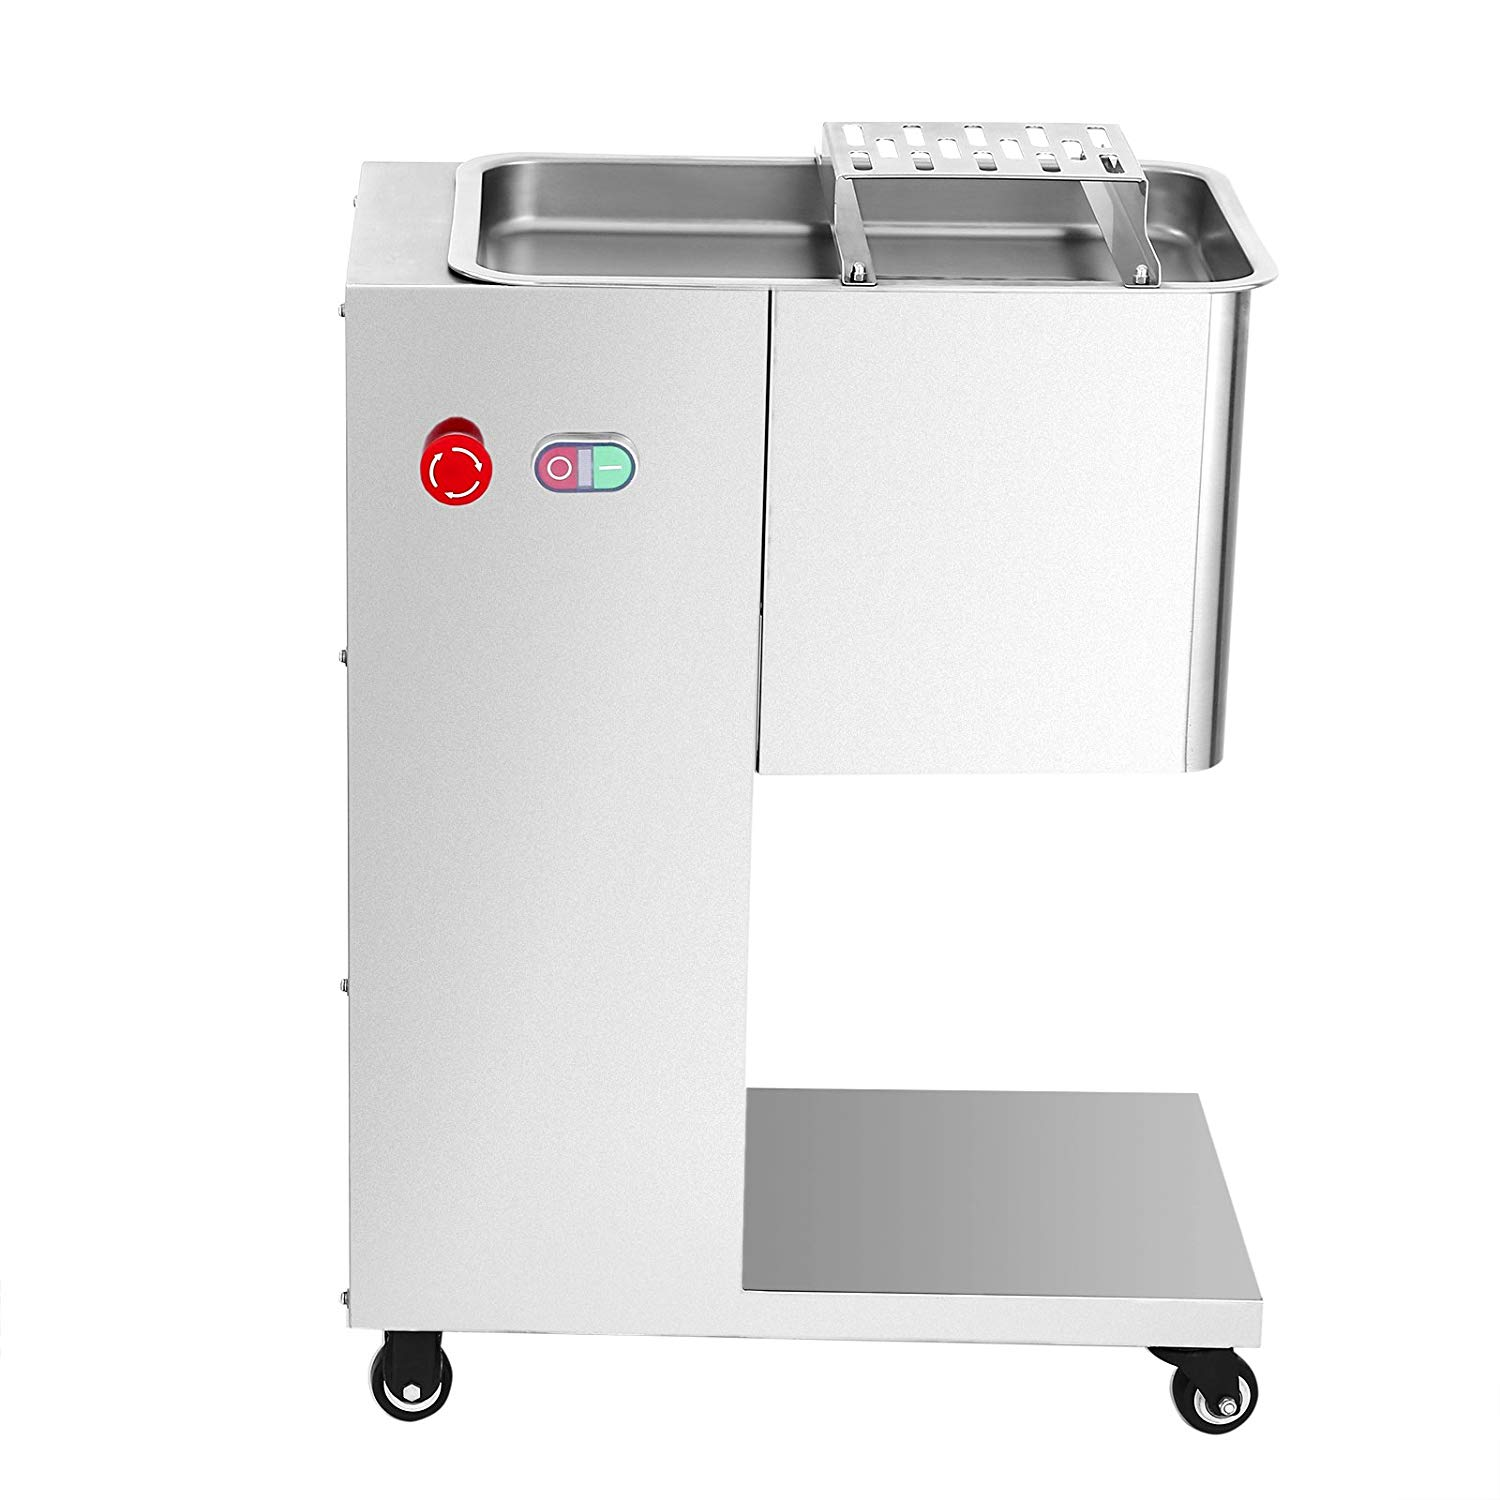 FoodKing Commercial Meat Slicer 1100LB/H 550W Stainless Steel Fresh Meat Cutter 3mm Cutting Blade ElectricMeat Cutting Machine for Restaurant (1100LBS/H)